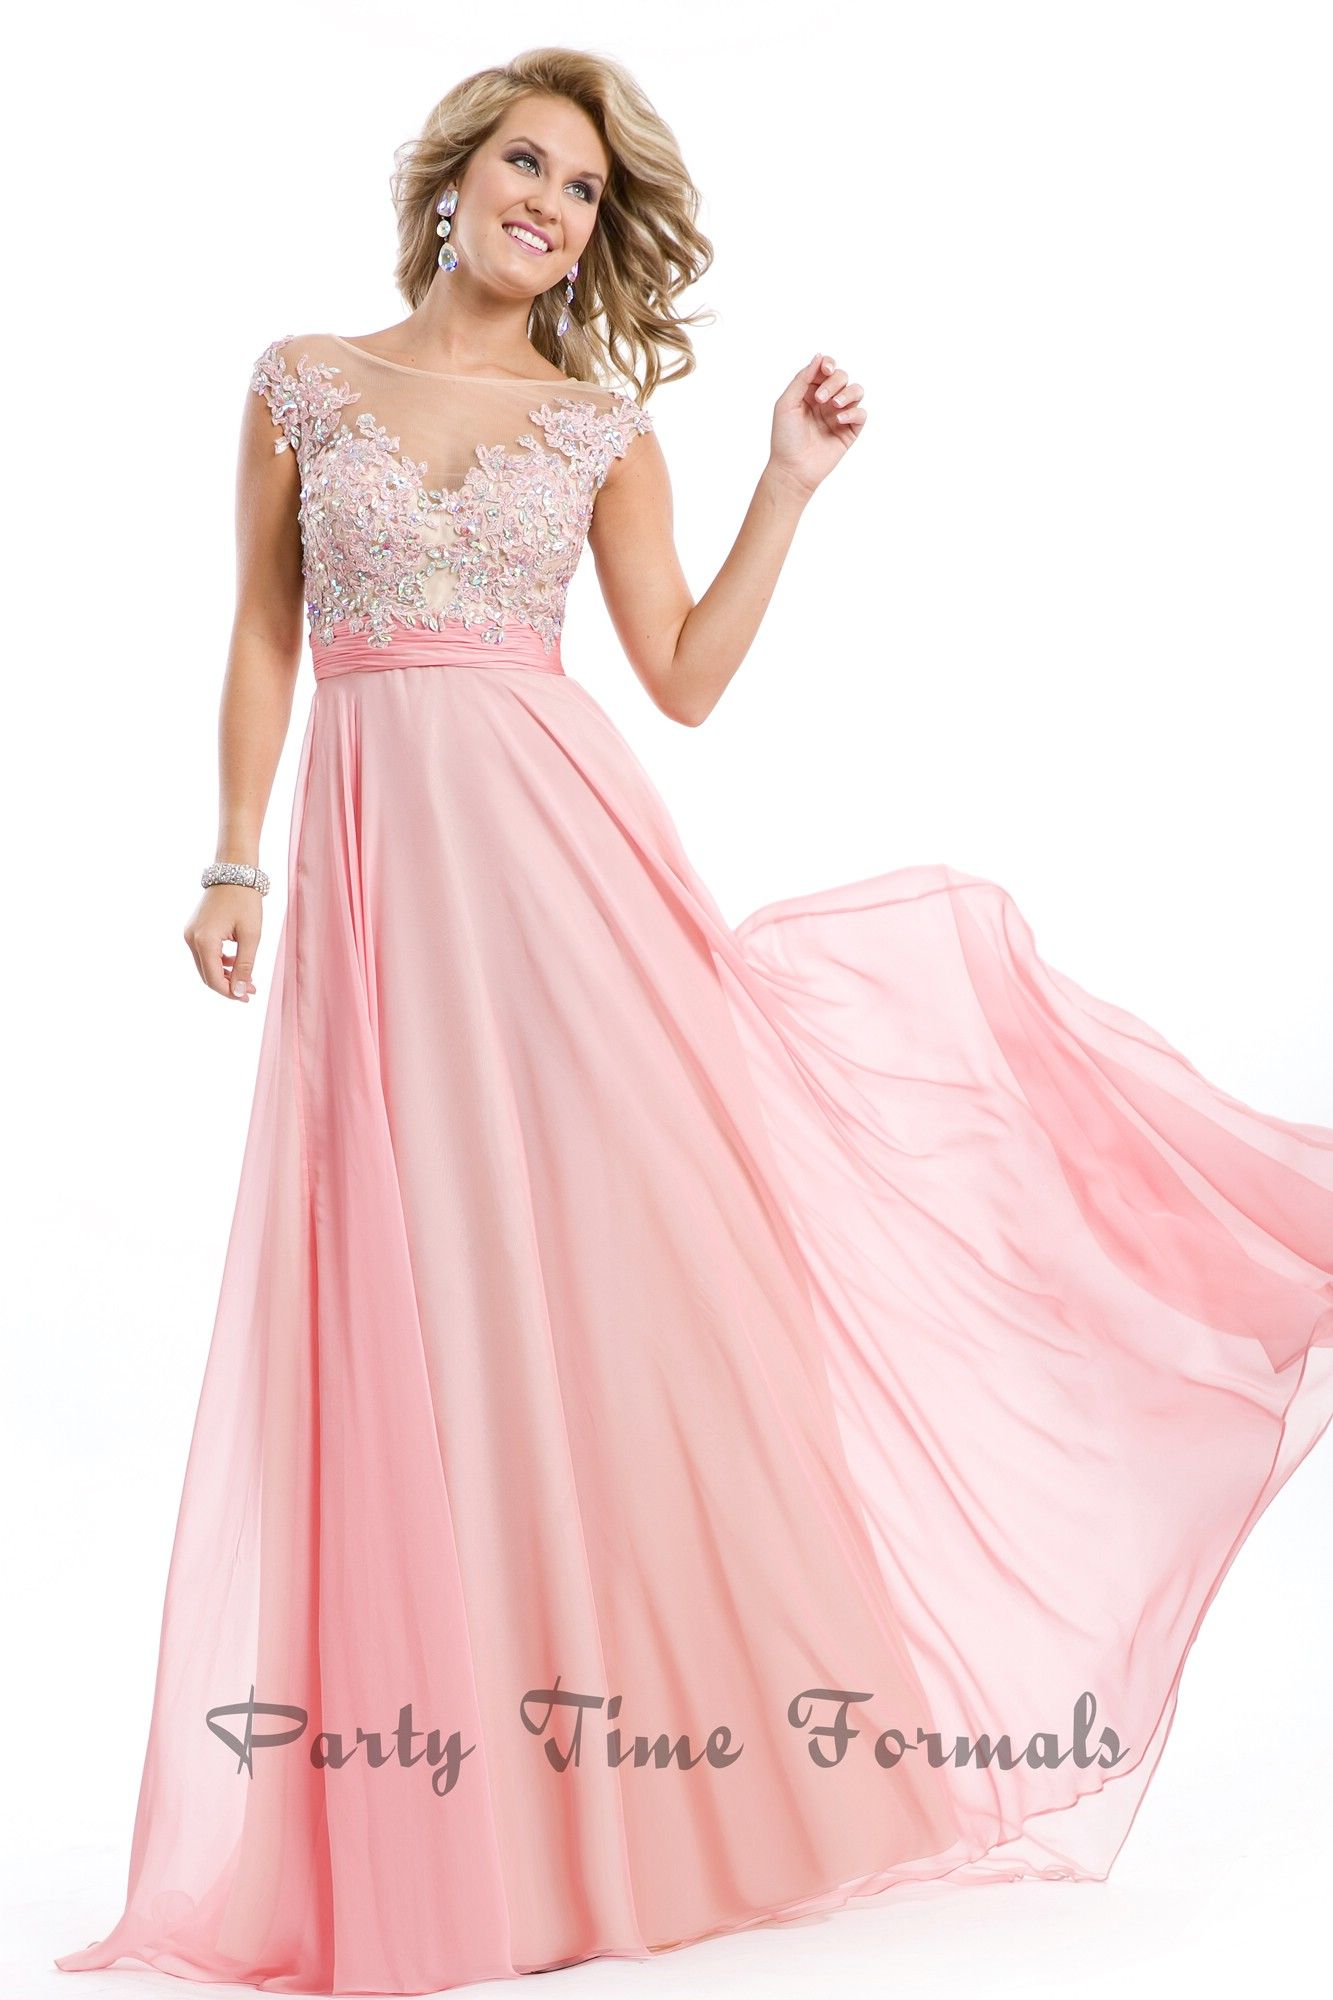 Amazing blush #prom dress by PartyTimeFormals #prom2014 #pocadiz ...